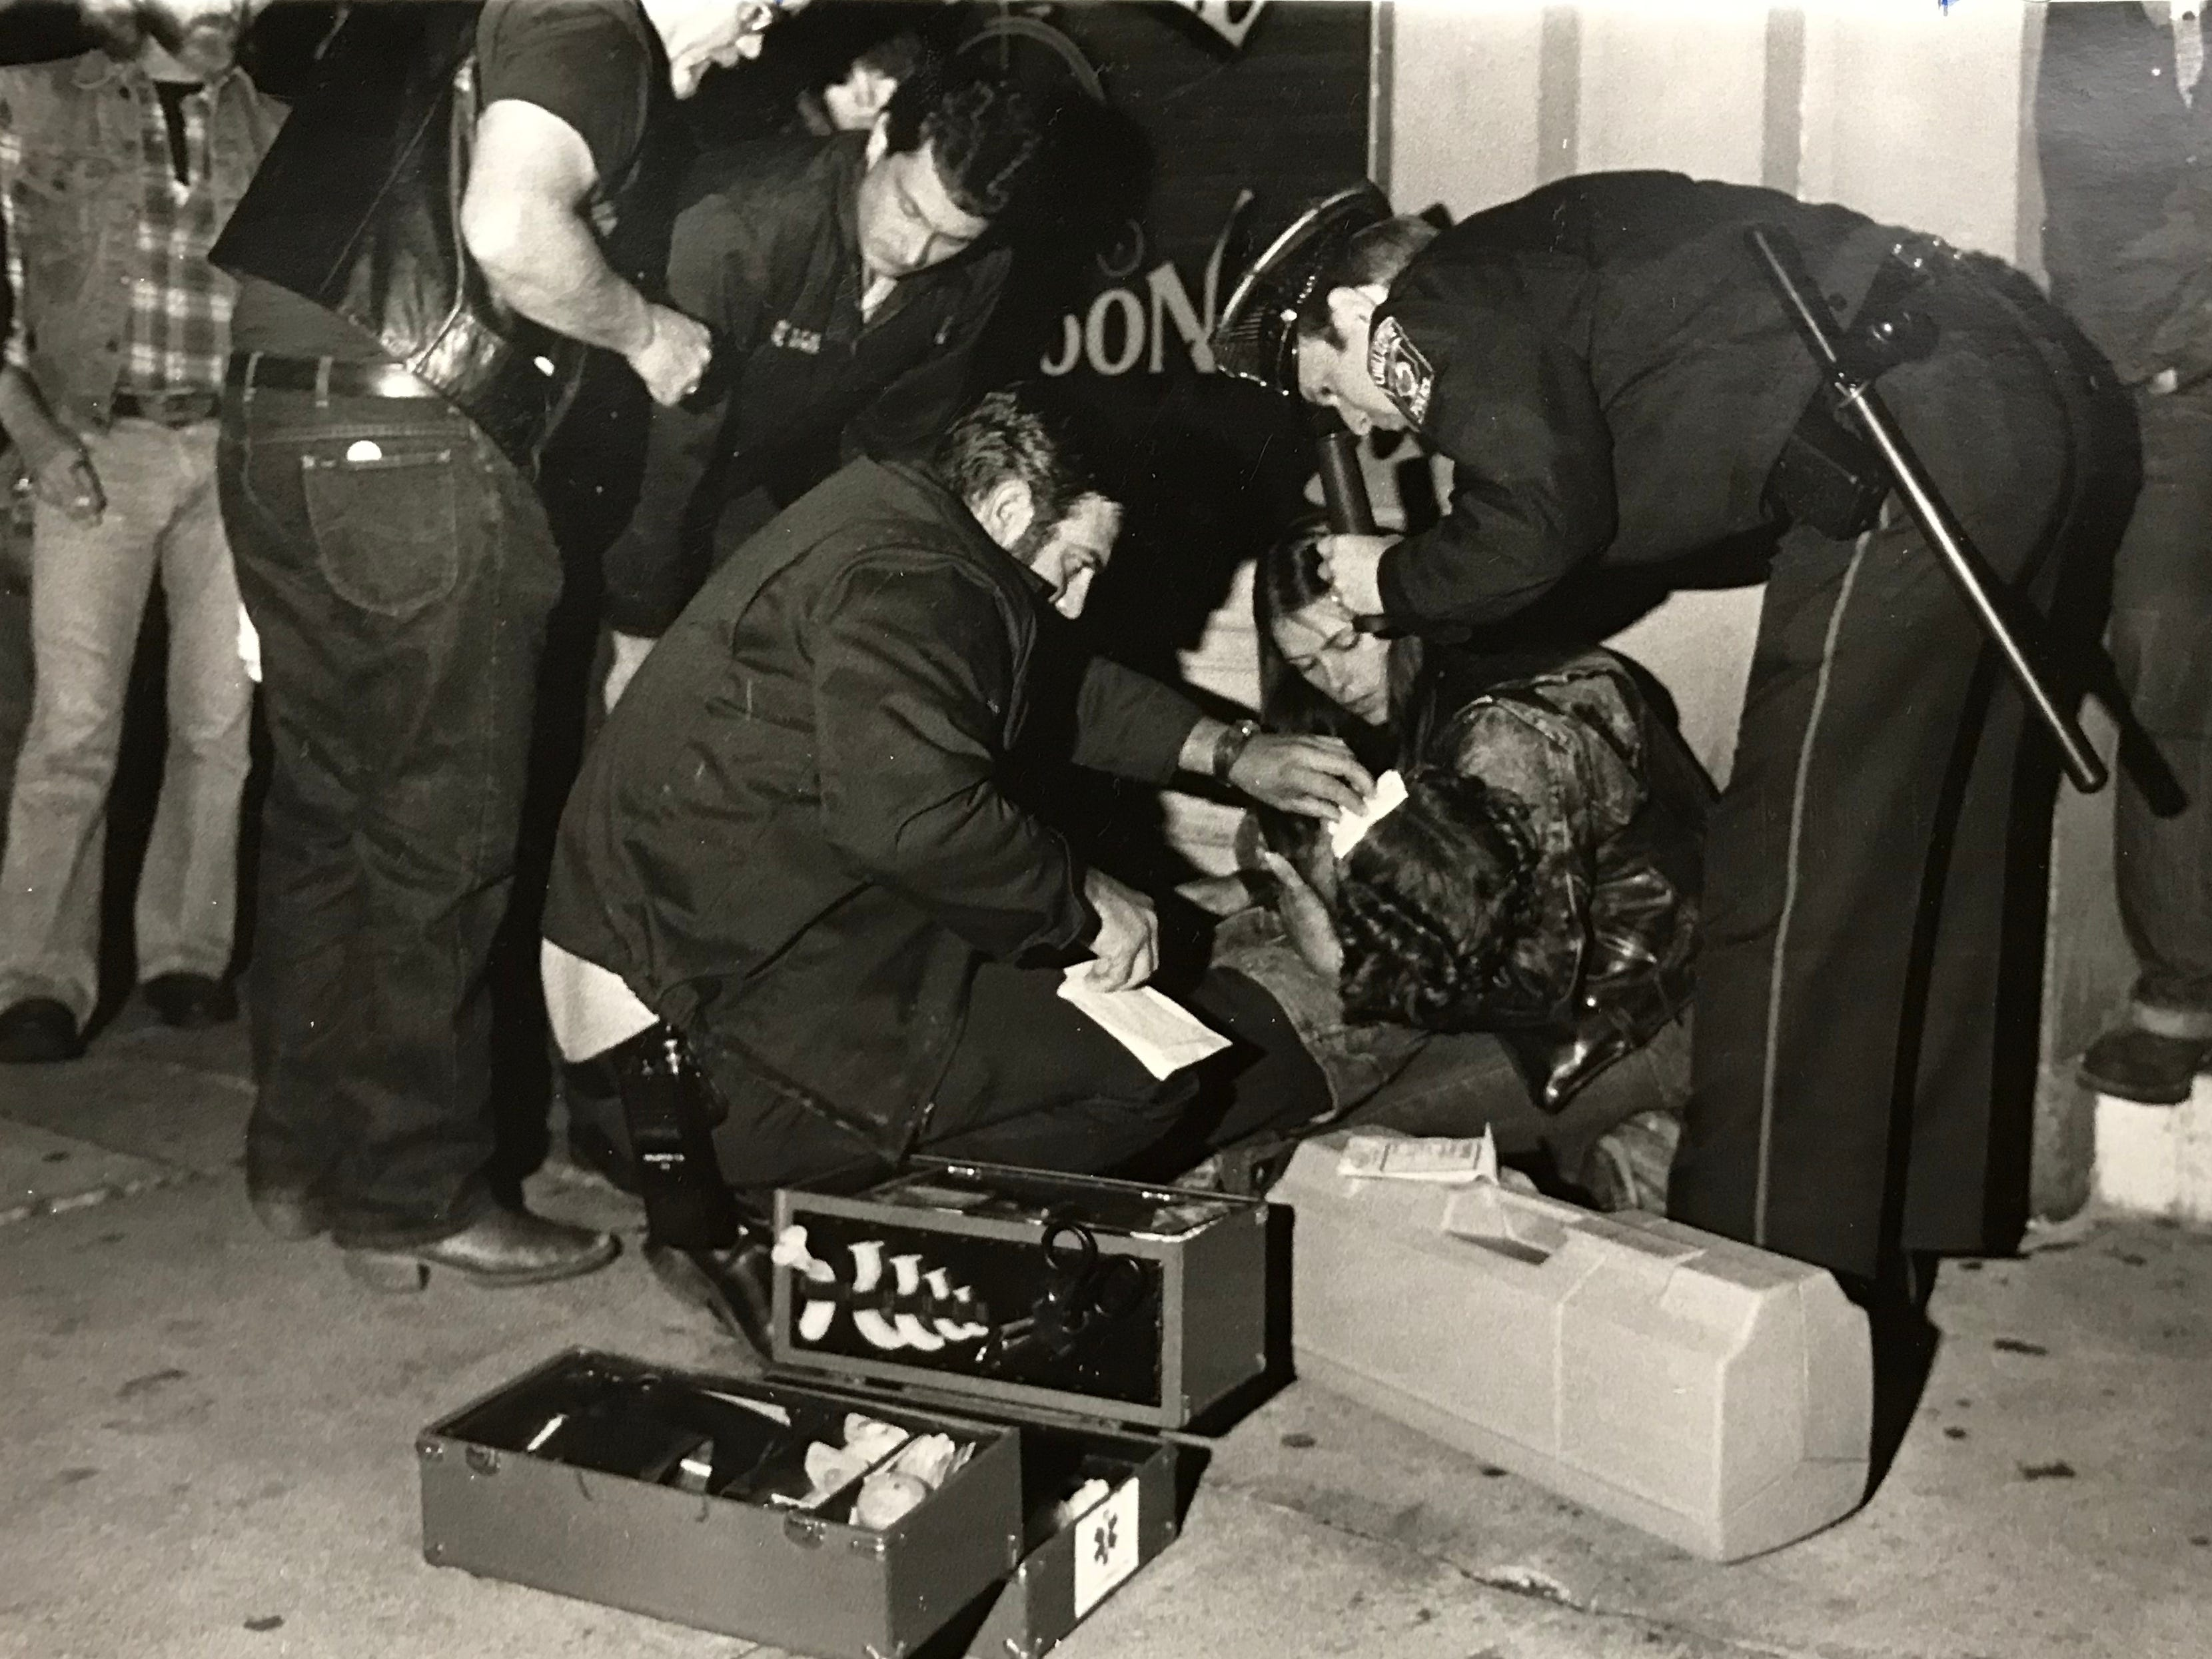 Chillicothe Fire Department and Police Department personnel tend to someone injured on a sidewalk in this undated Gazette file photo.